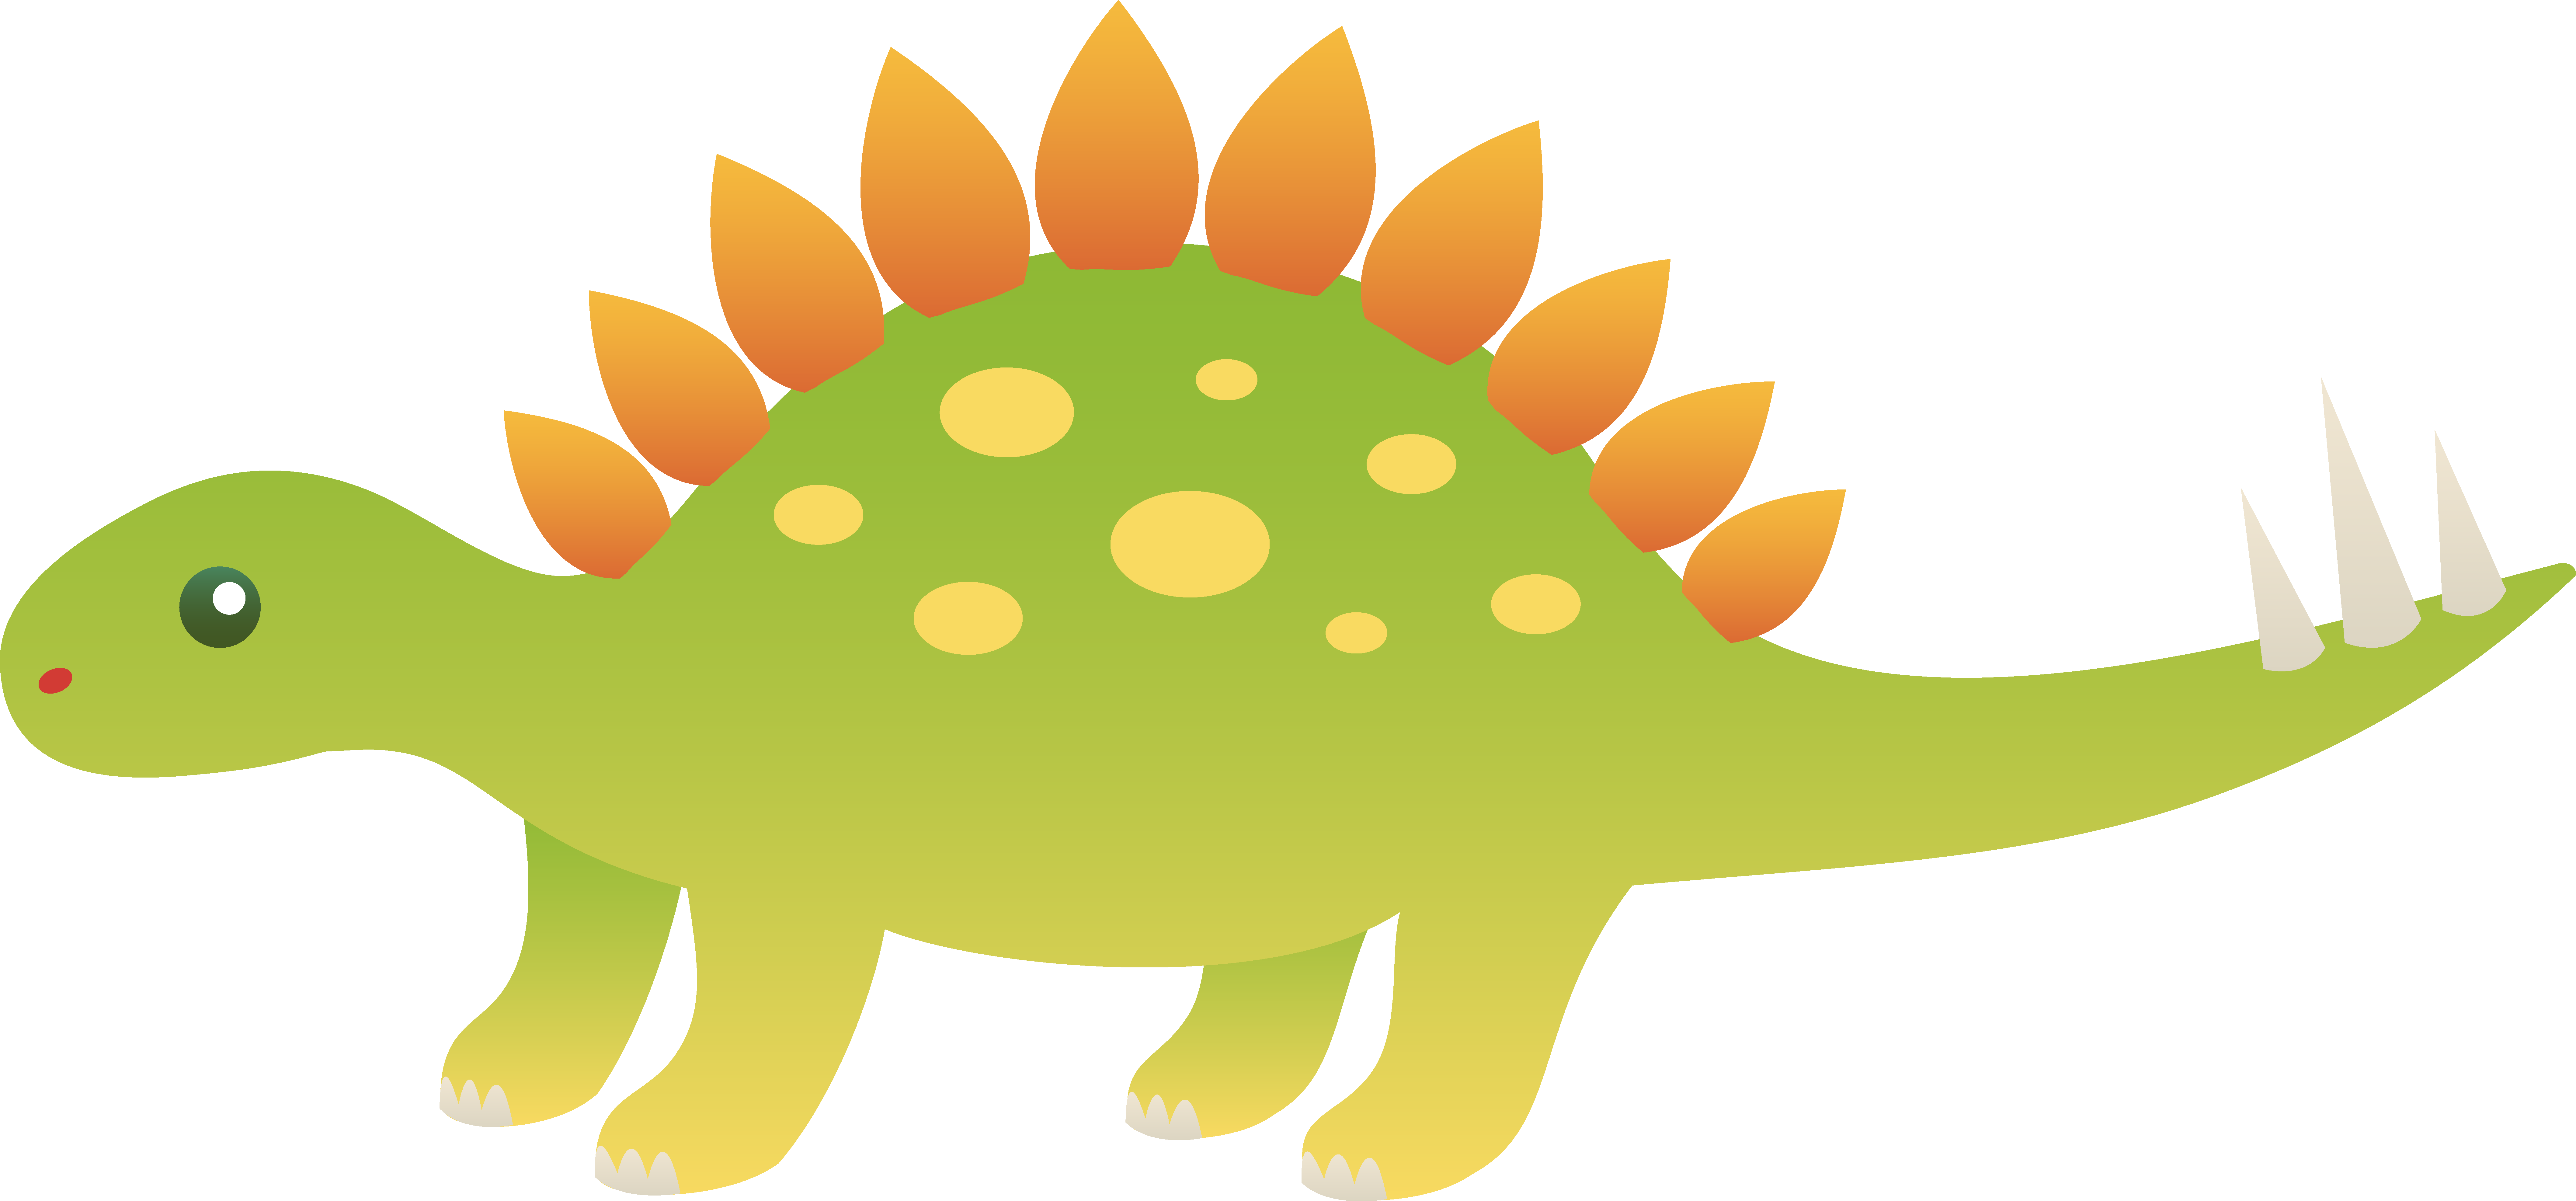 Free dinosaur clipart clip art pictures graphics and illustrations 2 - Clipartix